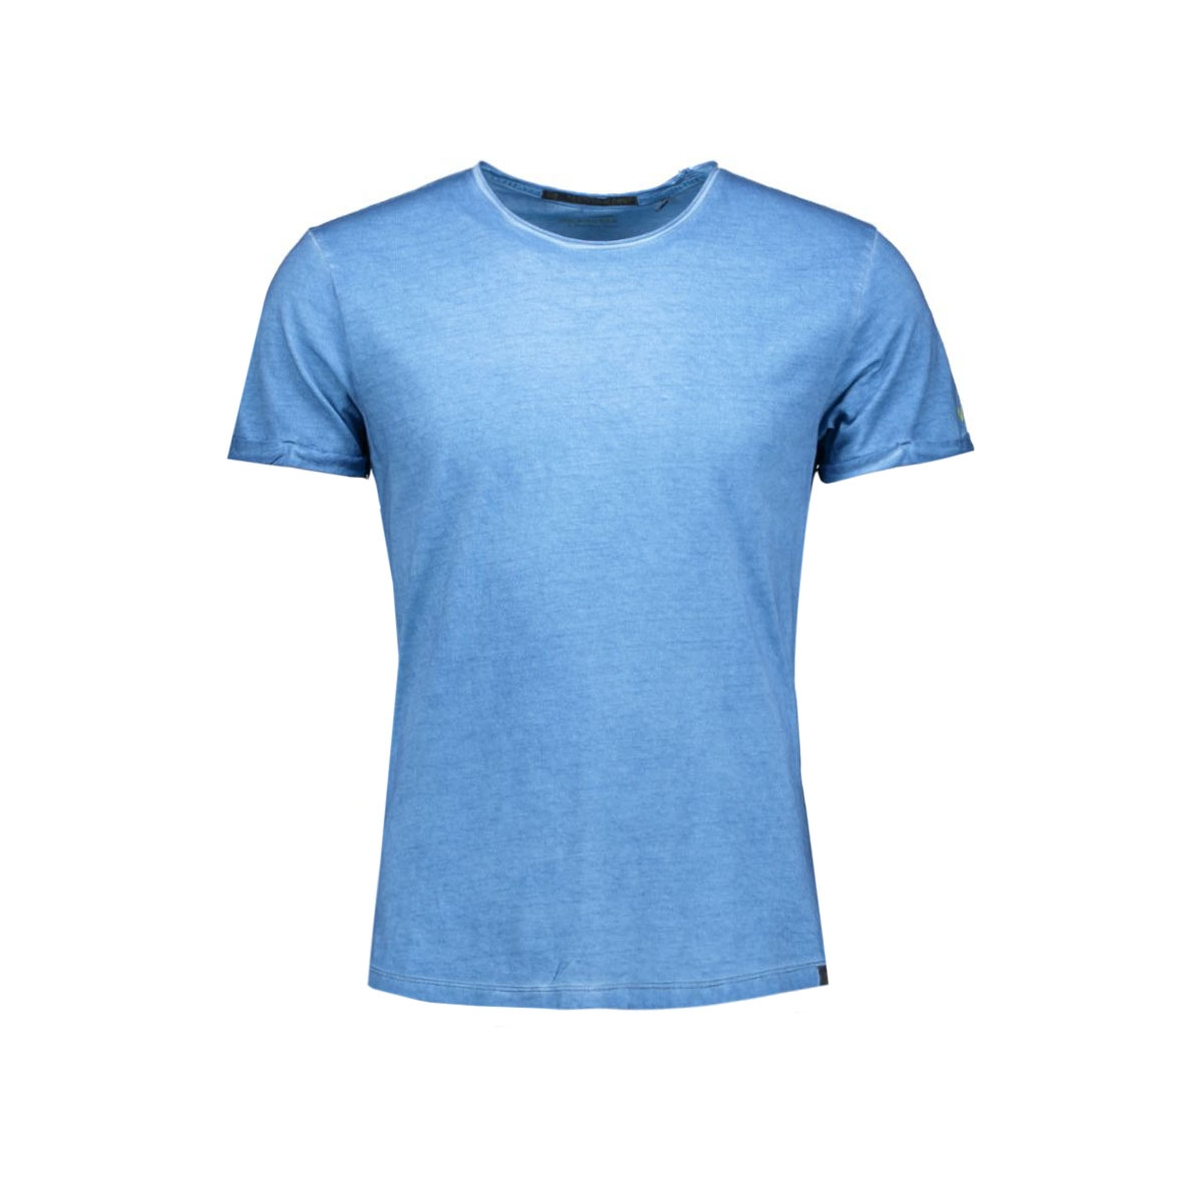 78320715 no-excess t-shirt 131 ocean